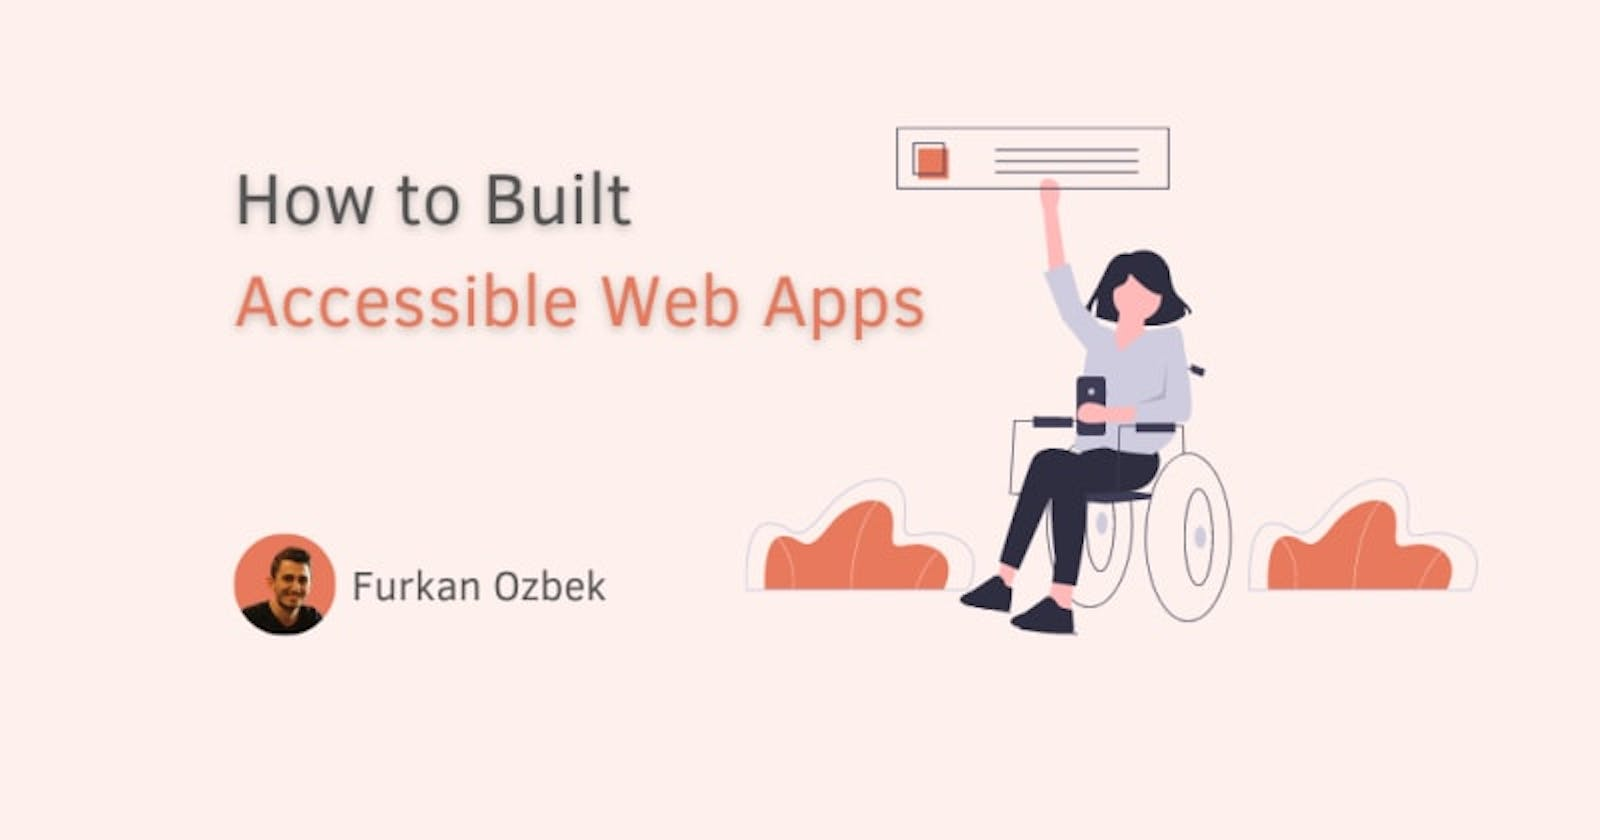 How to Built Accessible Web Apps